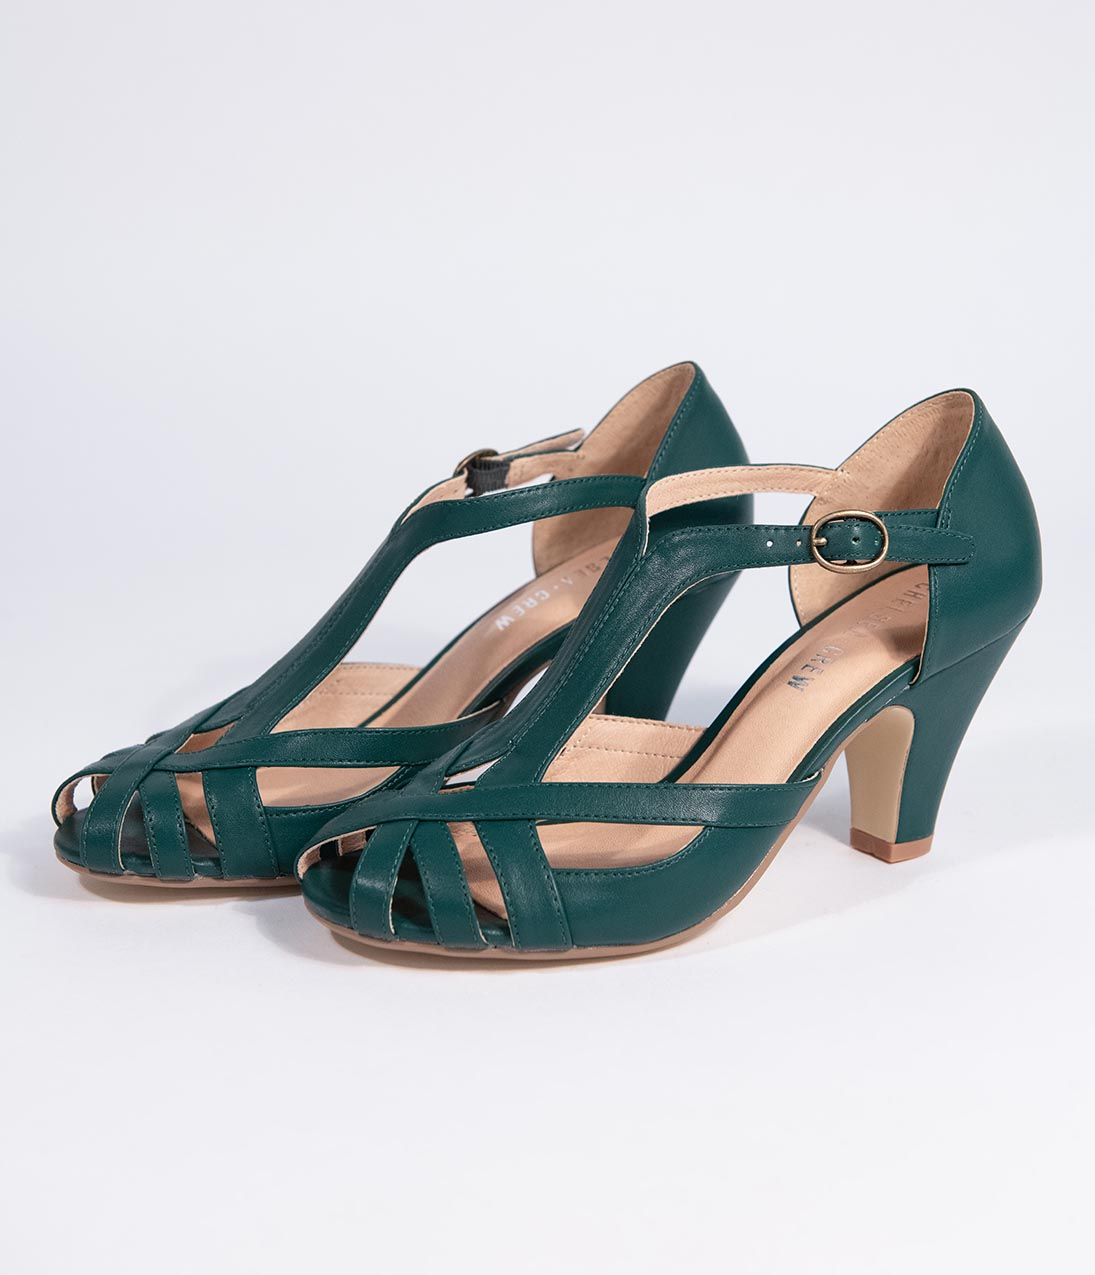 c2d0d7dfe5f Chelsea Crew Emerald Green Leatherette Peep Toe T-Strap Carly Pump